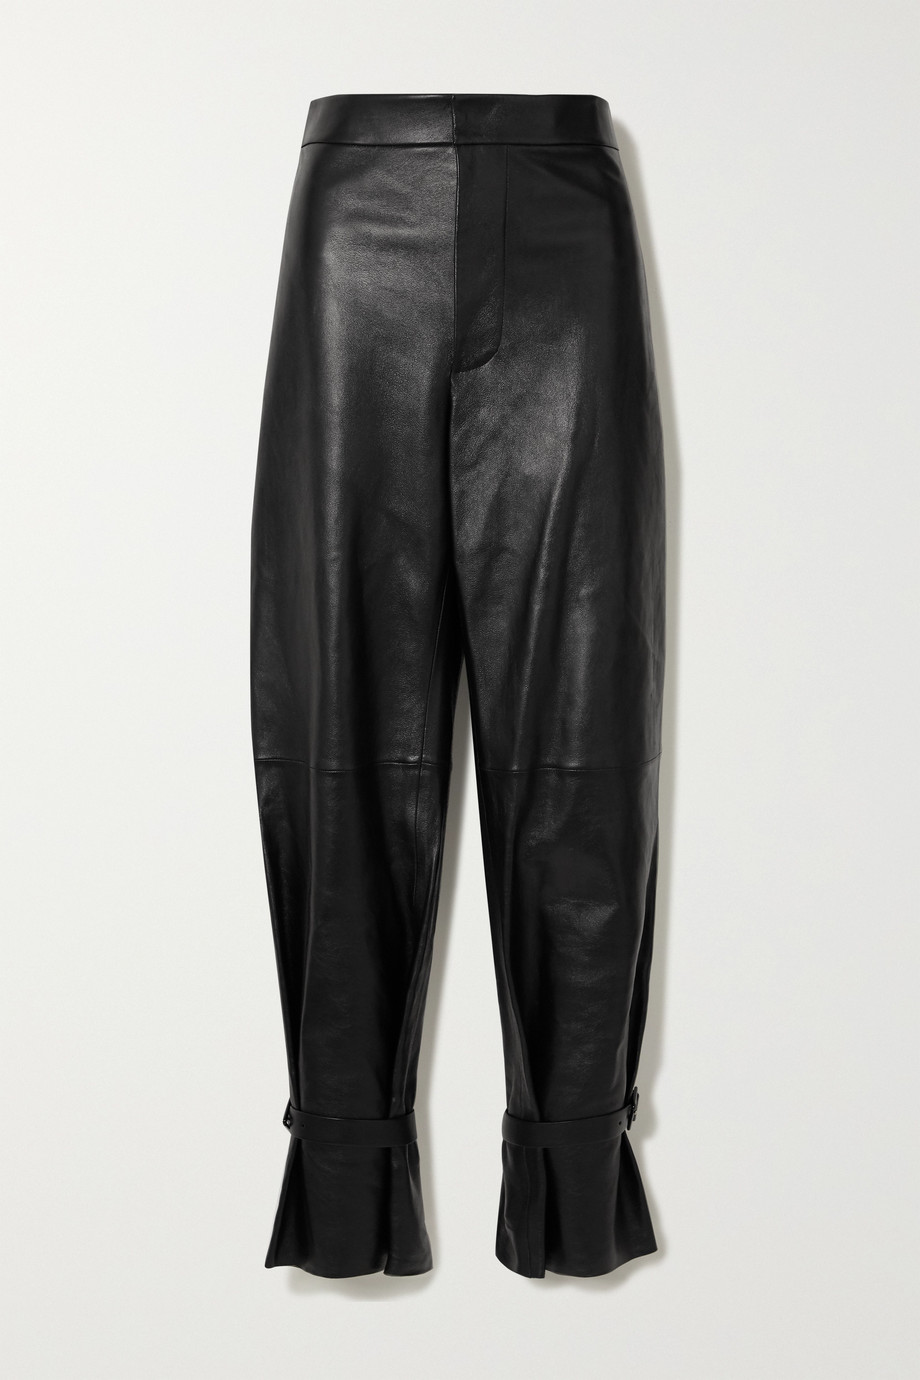 Leather straight-leg pants by Net-a-porter, available on net-a-porter.com for $3950 Kylie Jenner Pants SIMILAR PRODUCT